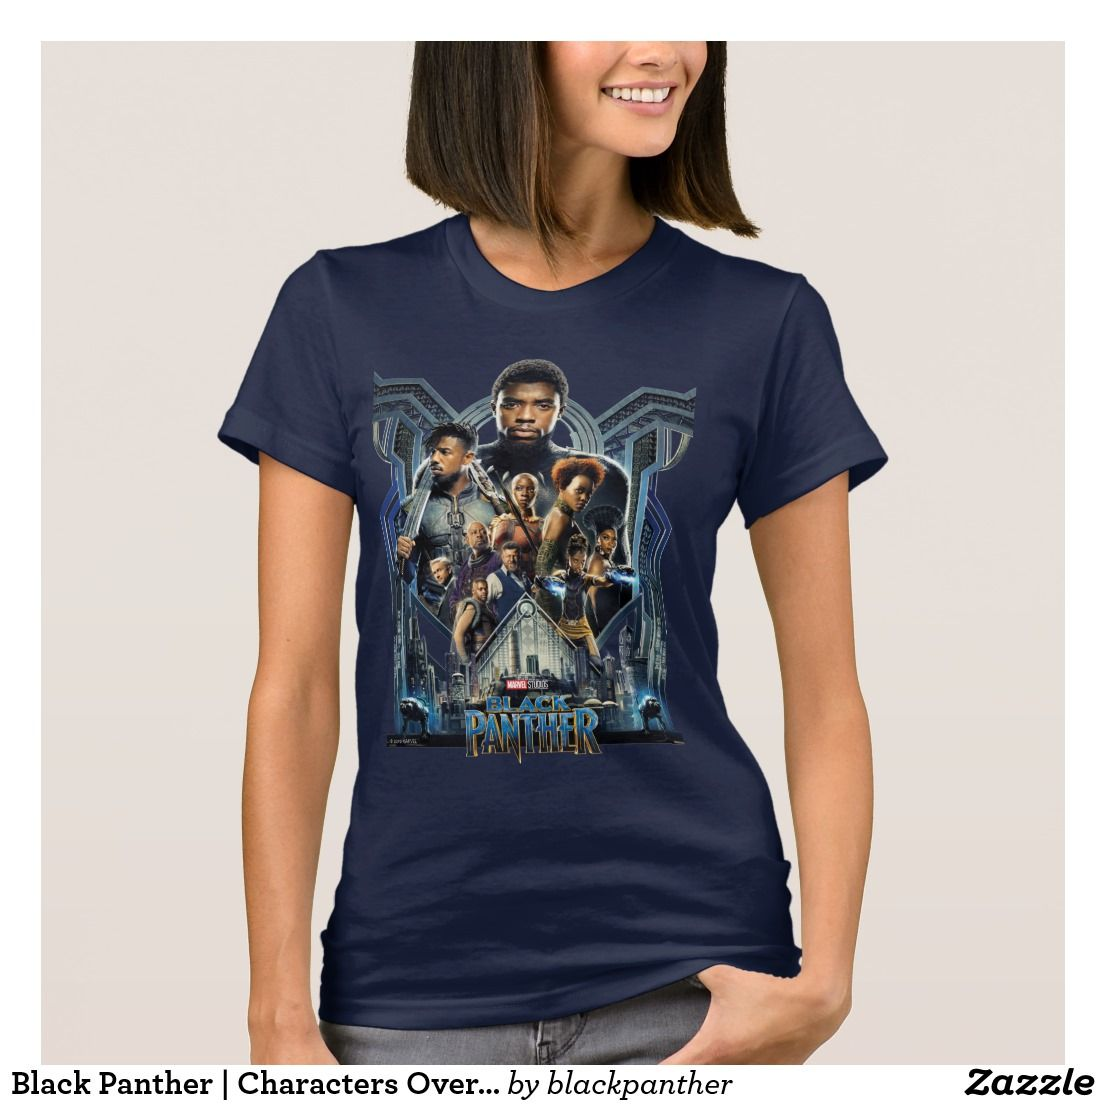 be9badba5 Black Panther | Characters Over Wakanda T-Shirt. Must have awesome Marvel  items. #marvel #marvelcomics #comics #personalize #giftideas #shopping